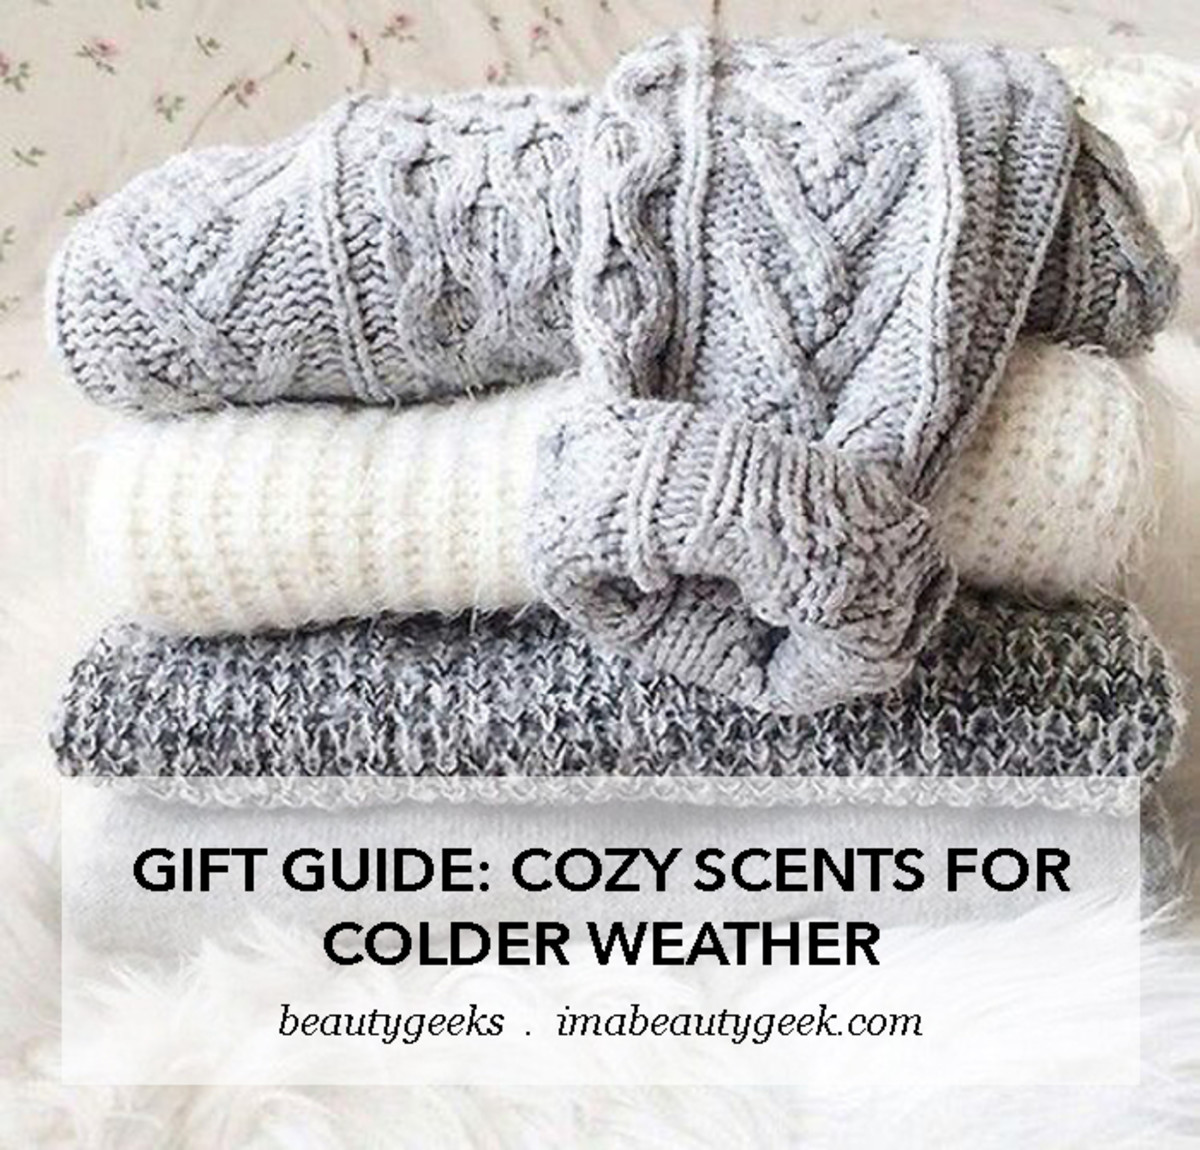 gift guide_cozy scents for colder weather-BEAUTYGEEKS